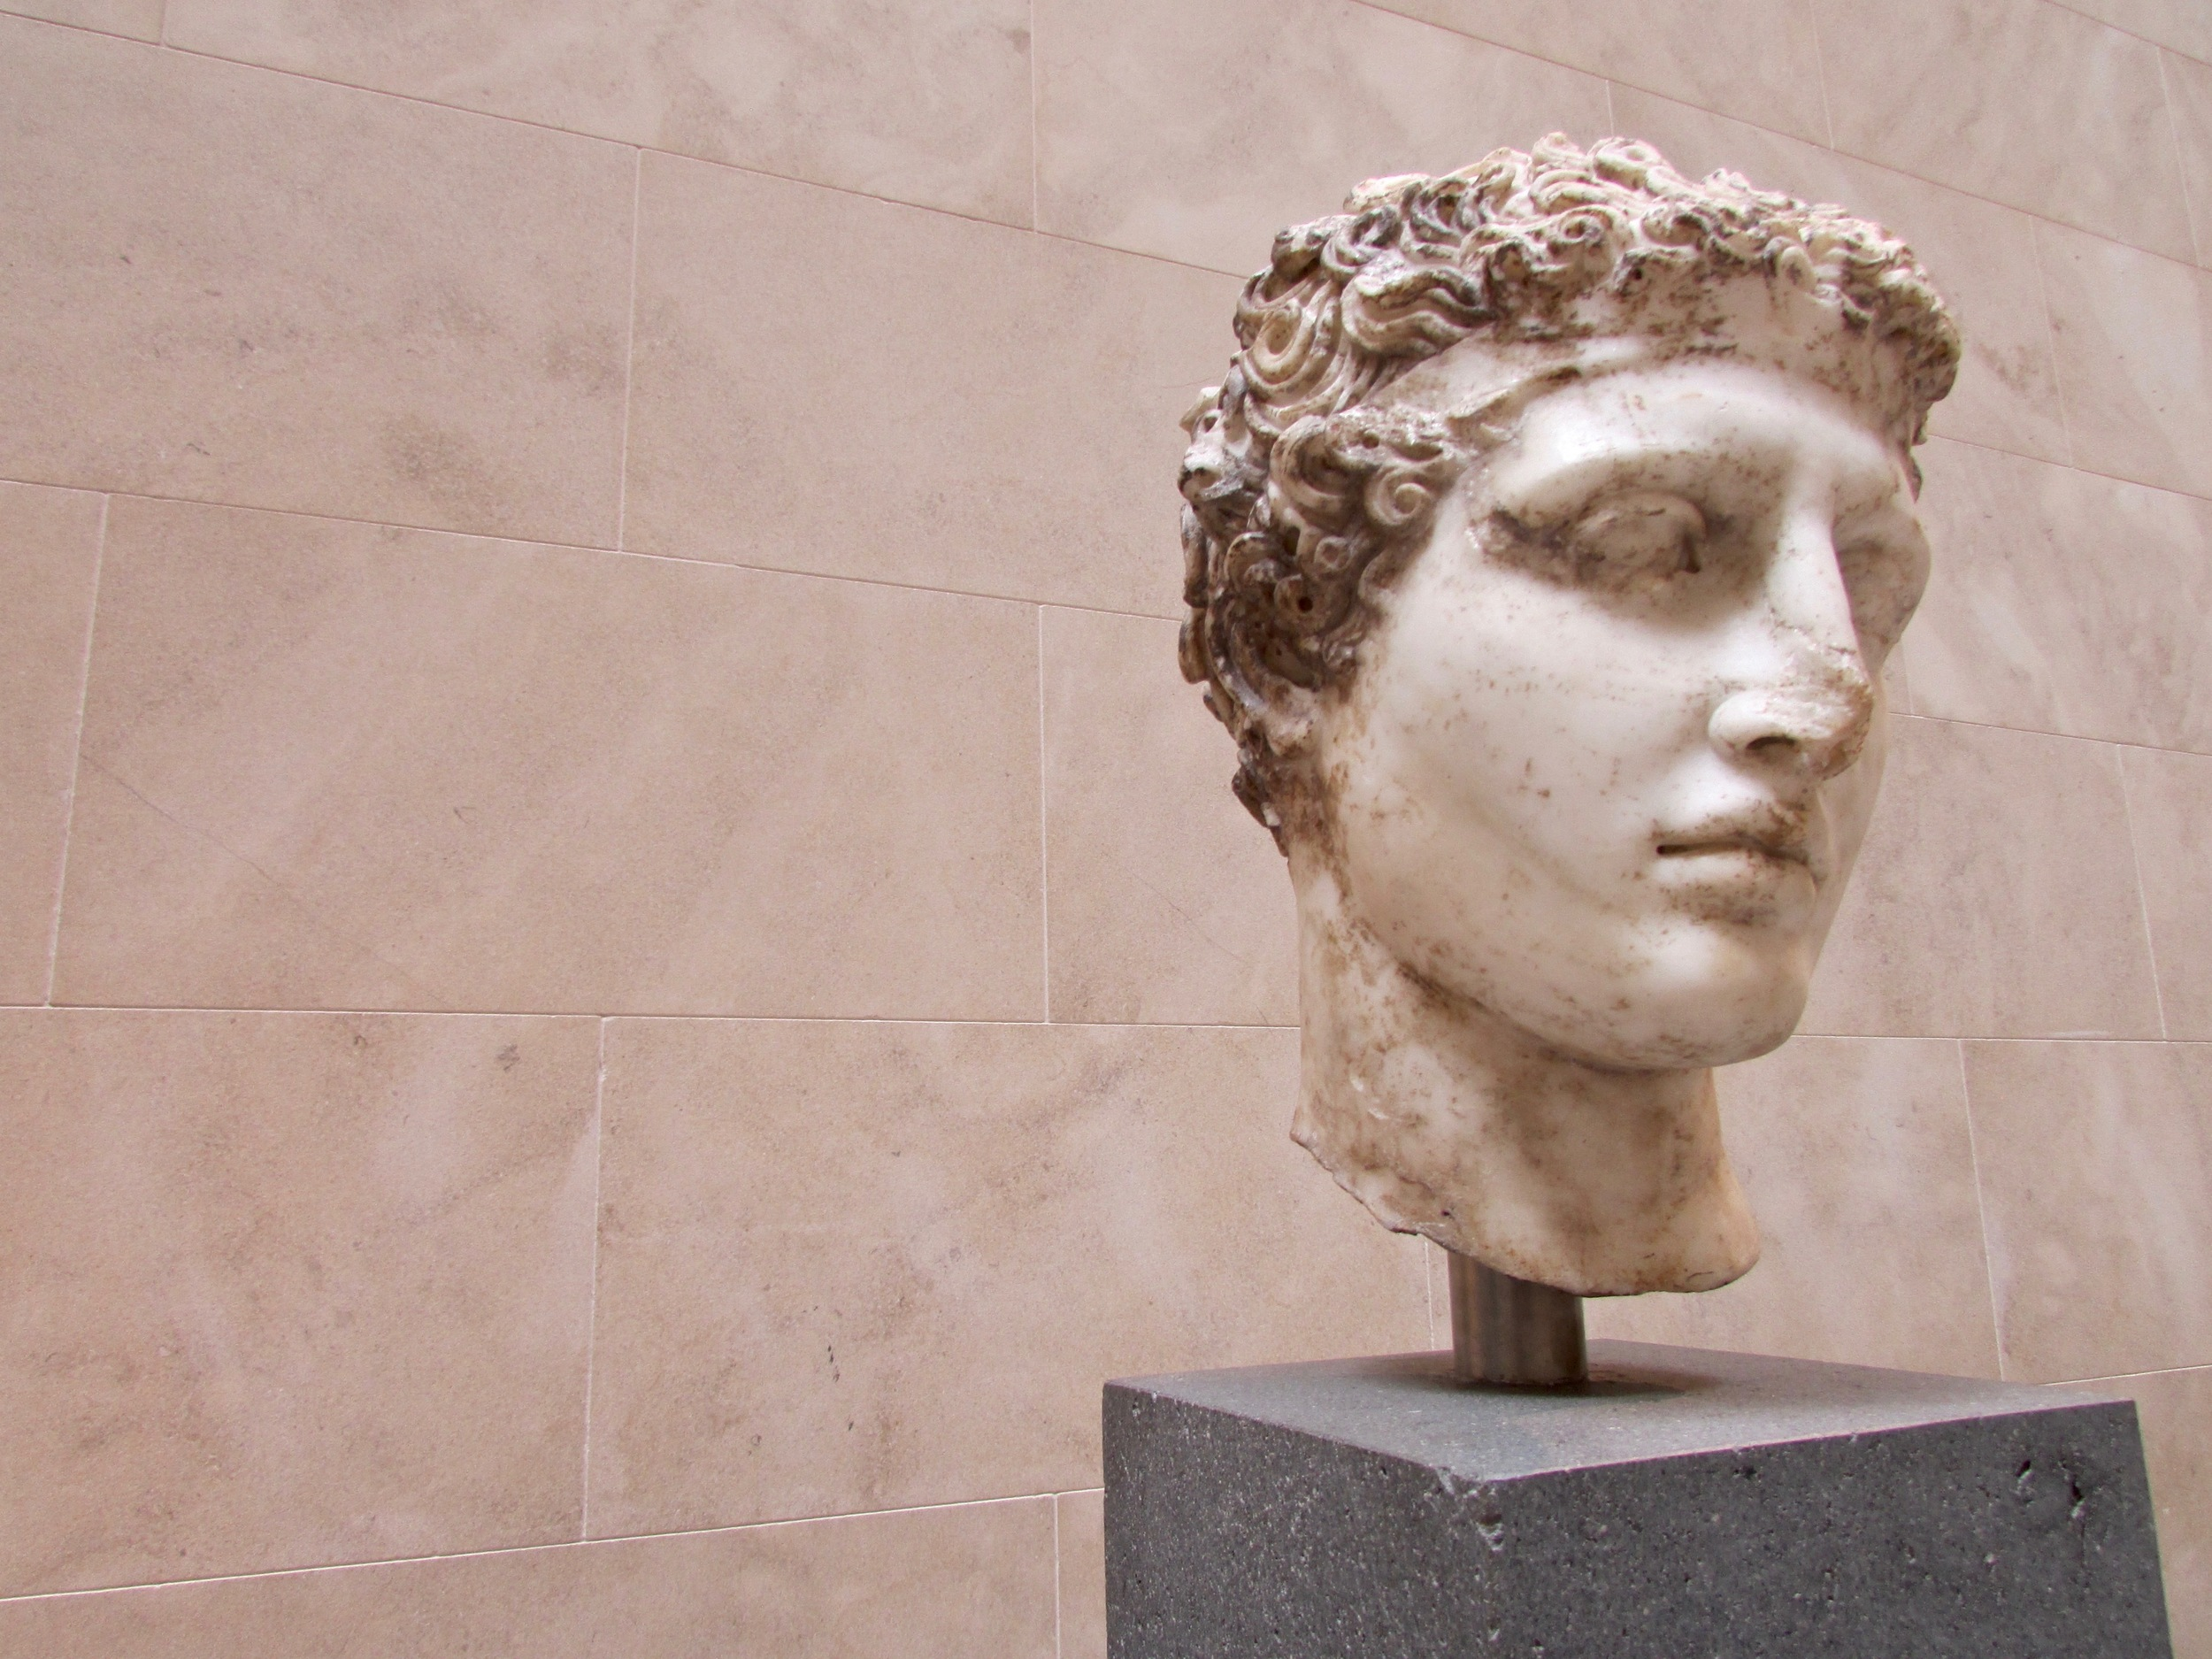 Marble head of an athlete in the Greek and Roman Art wing of The MET, NYC